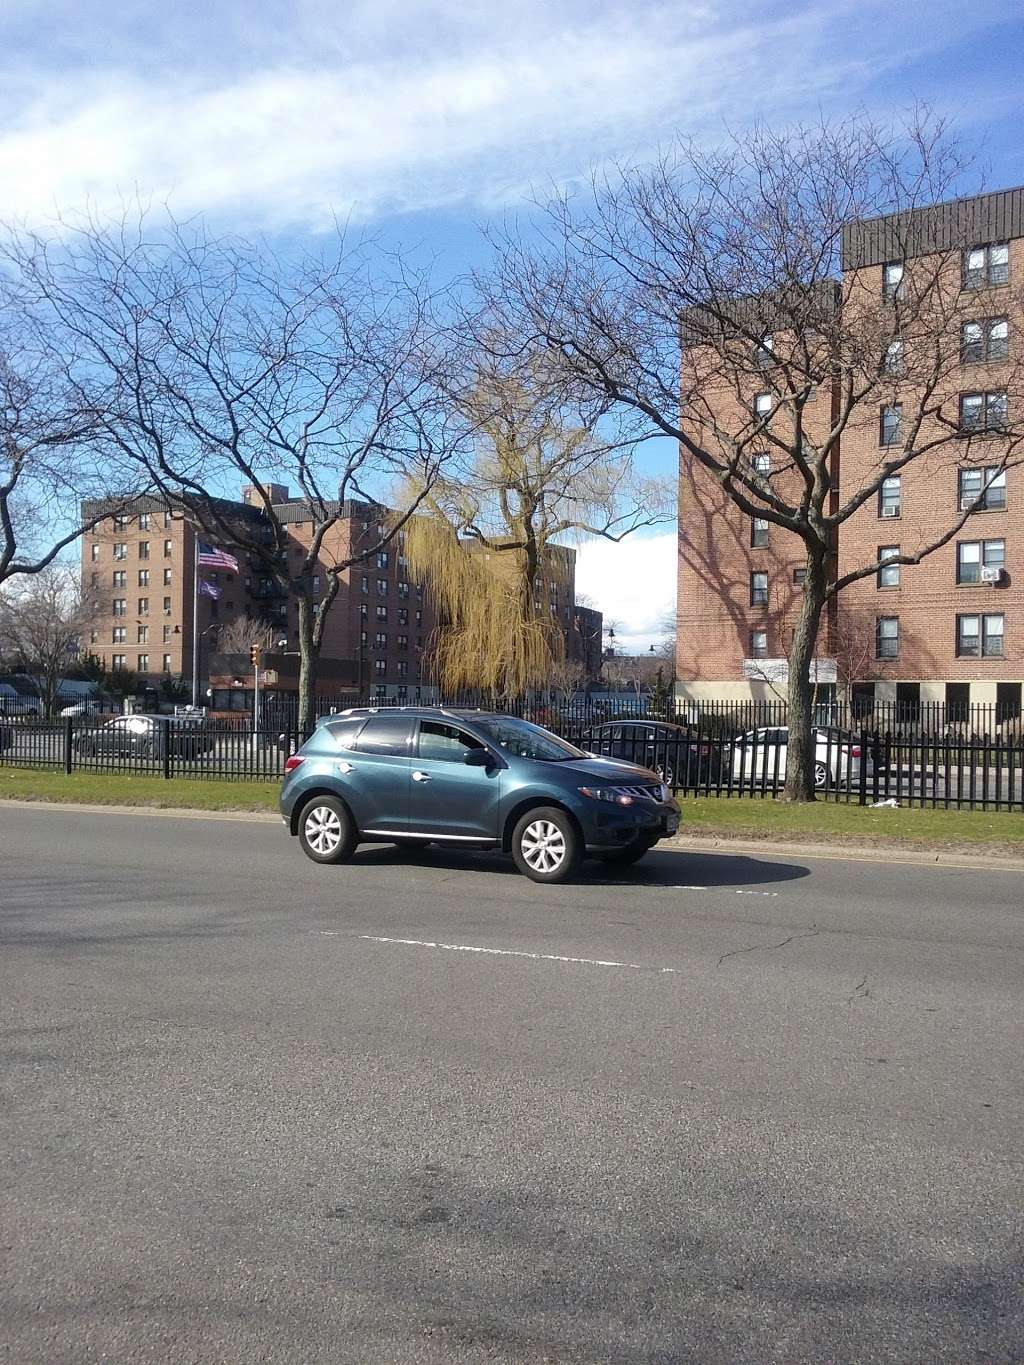 Seagirt Blvd & Crest Rd - transit station  | Photo 1 of 1 | Address: Queens, NY 11691, USA